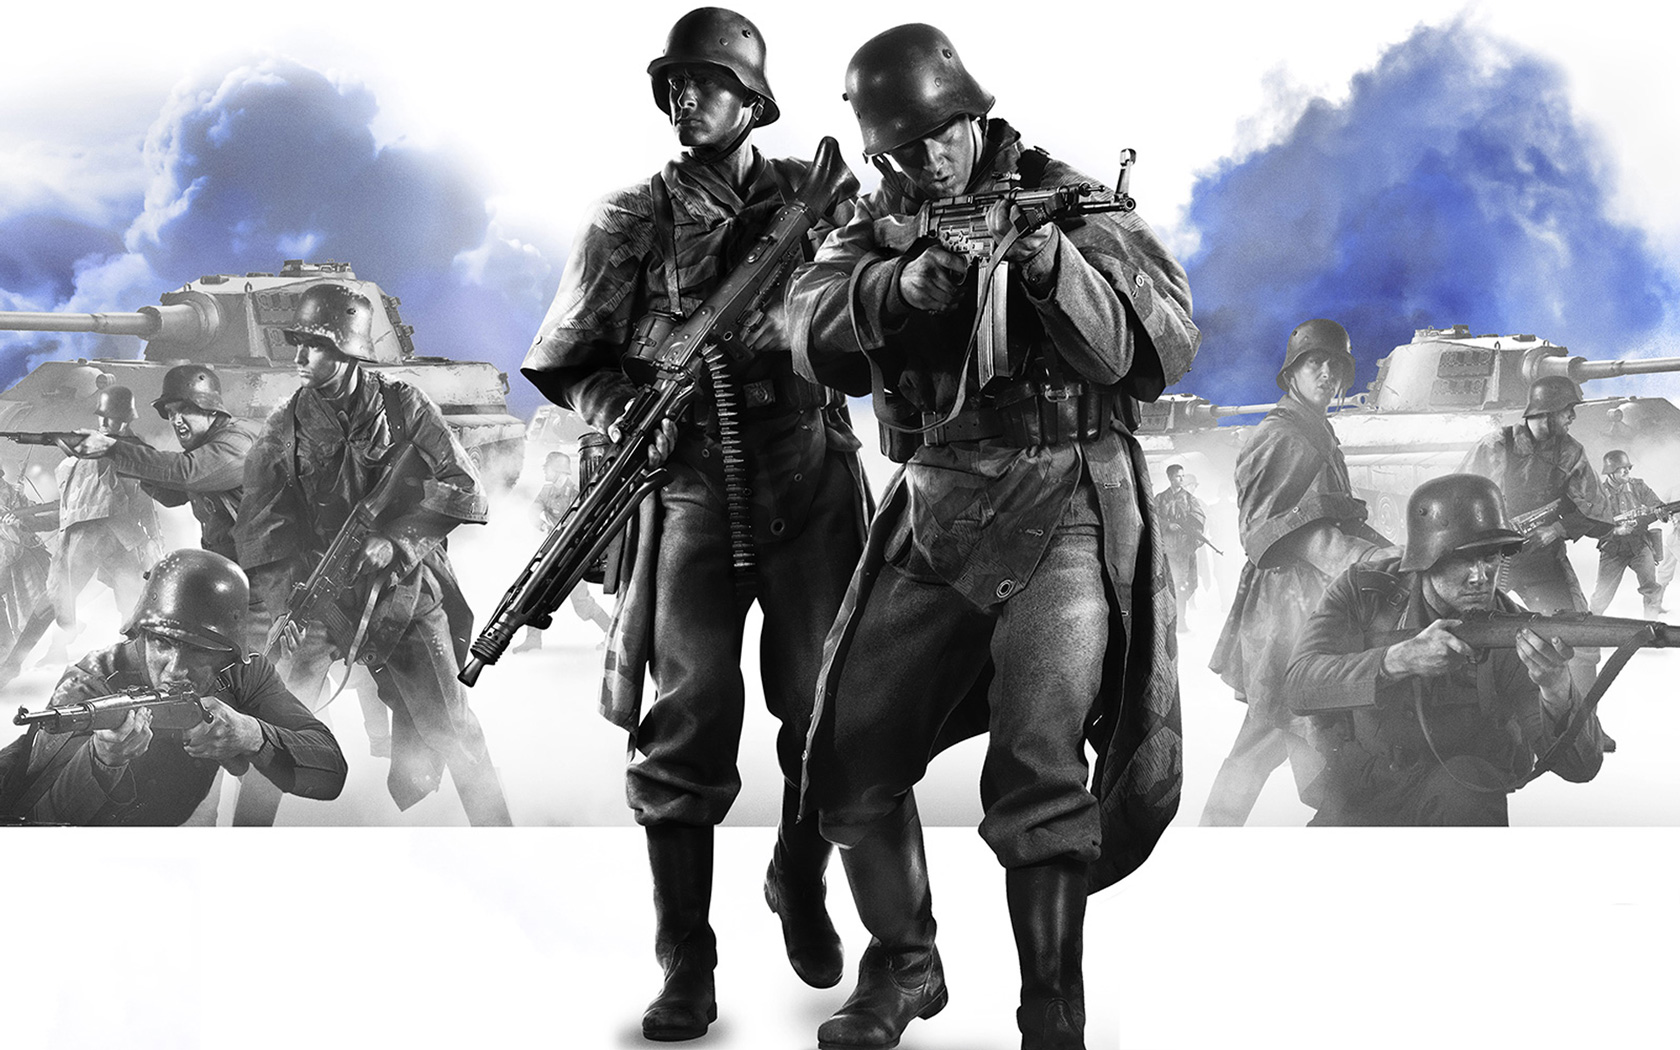 Free Company of Heroes 2 Wallpaper in 1680x1050